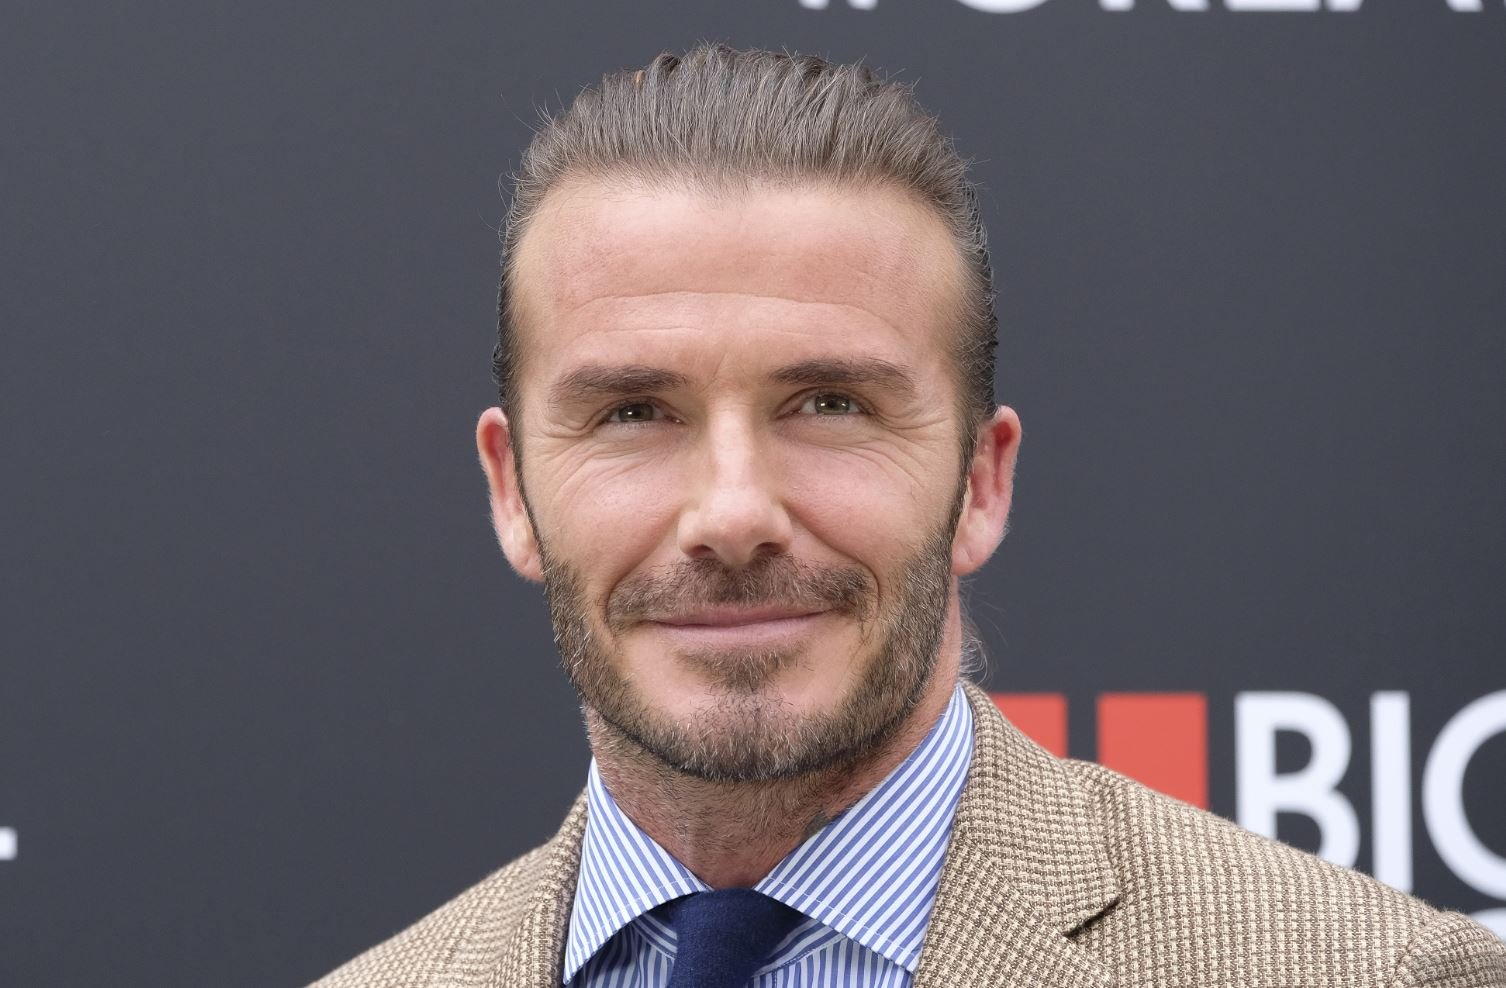 David Beckham S Fans Slate His New Hairstyle After Sharing Selfie